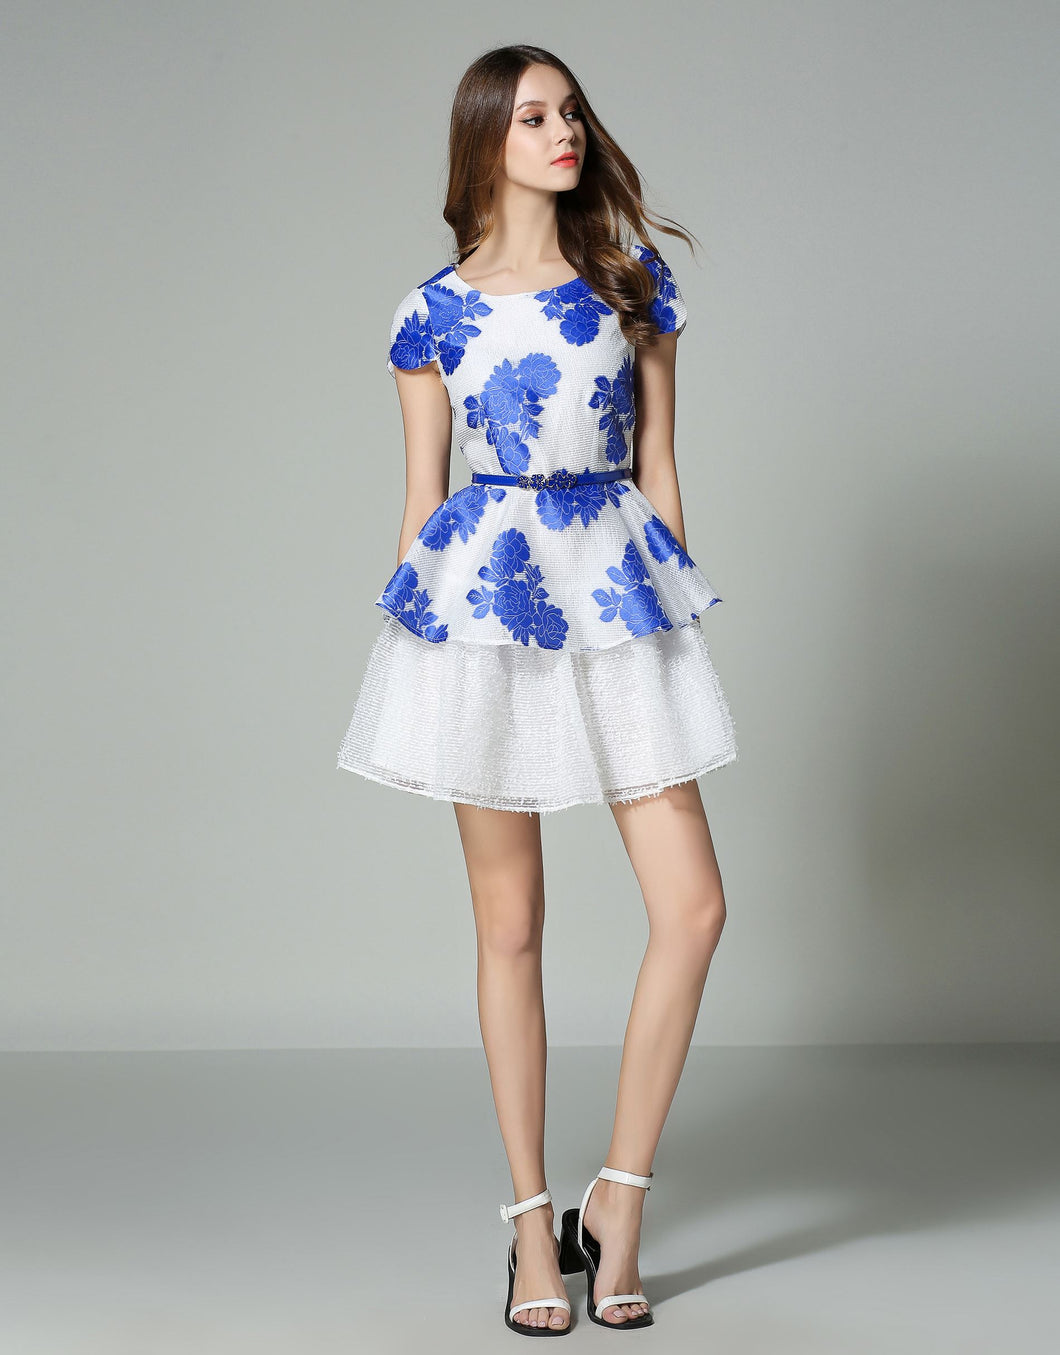 Comino Couture Blue Dreams Dress *WAS £85*